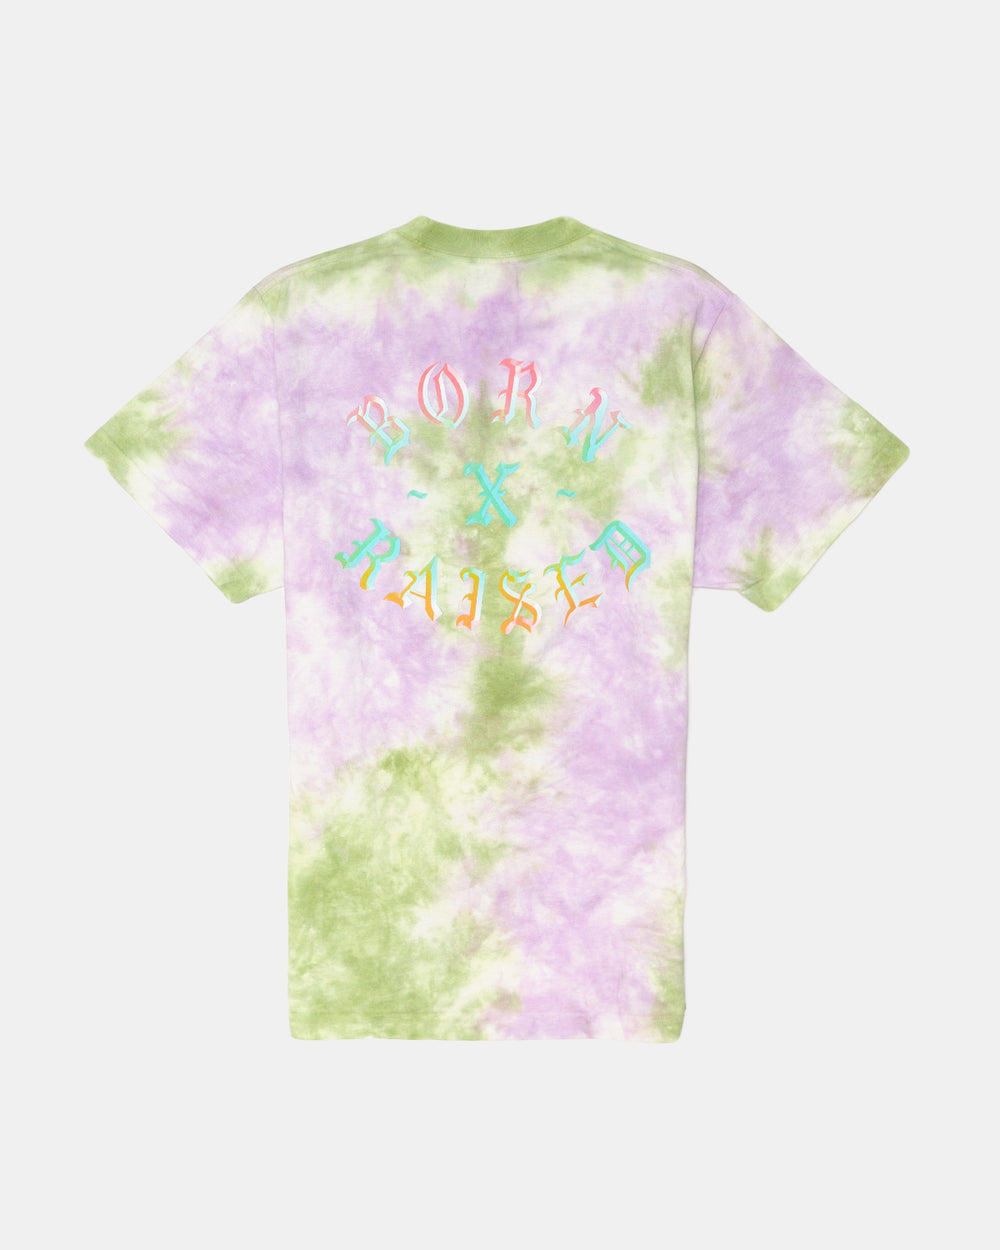 Born x Raised - Washed Rocker Tee (Tie Dye)